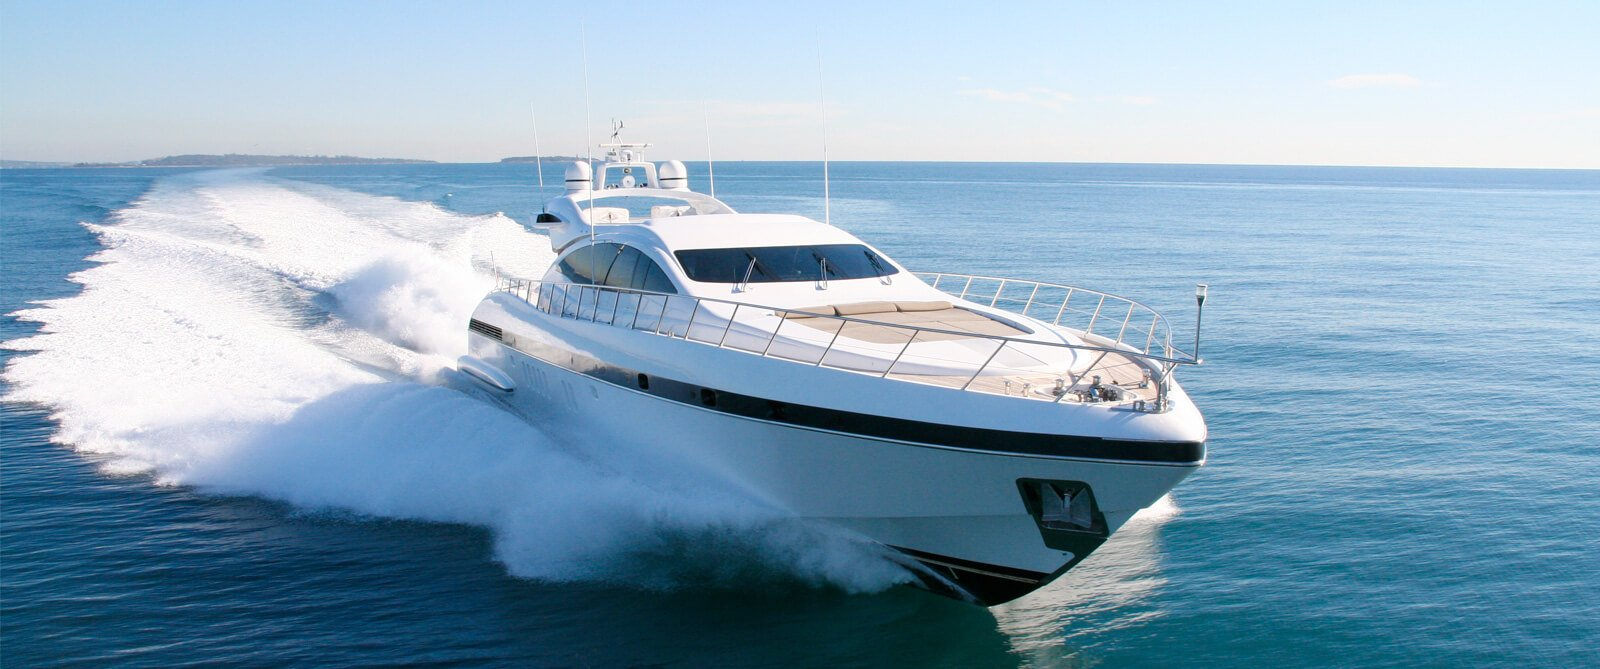 Luxury Yacht Charter on Ibiza and Formentera